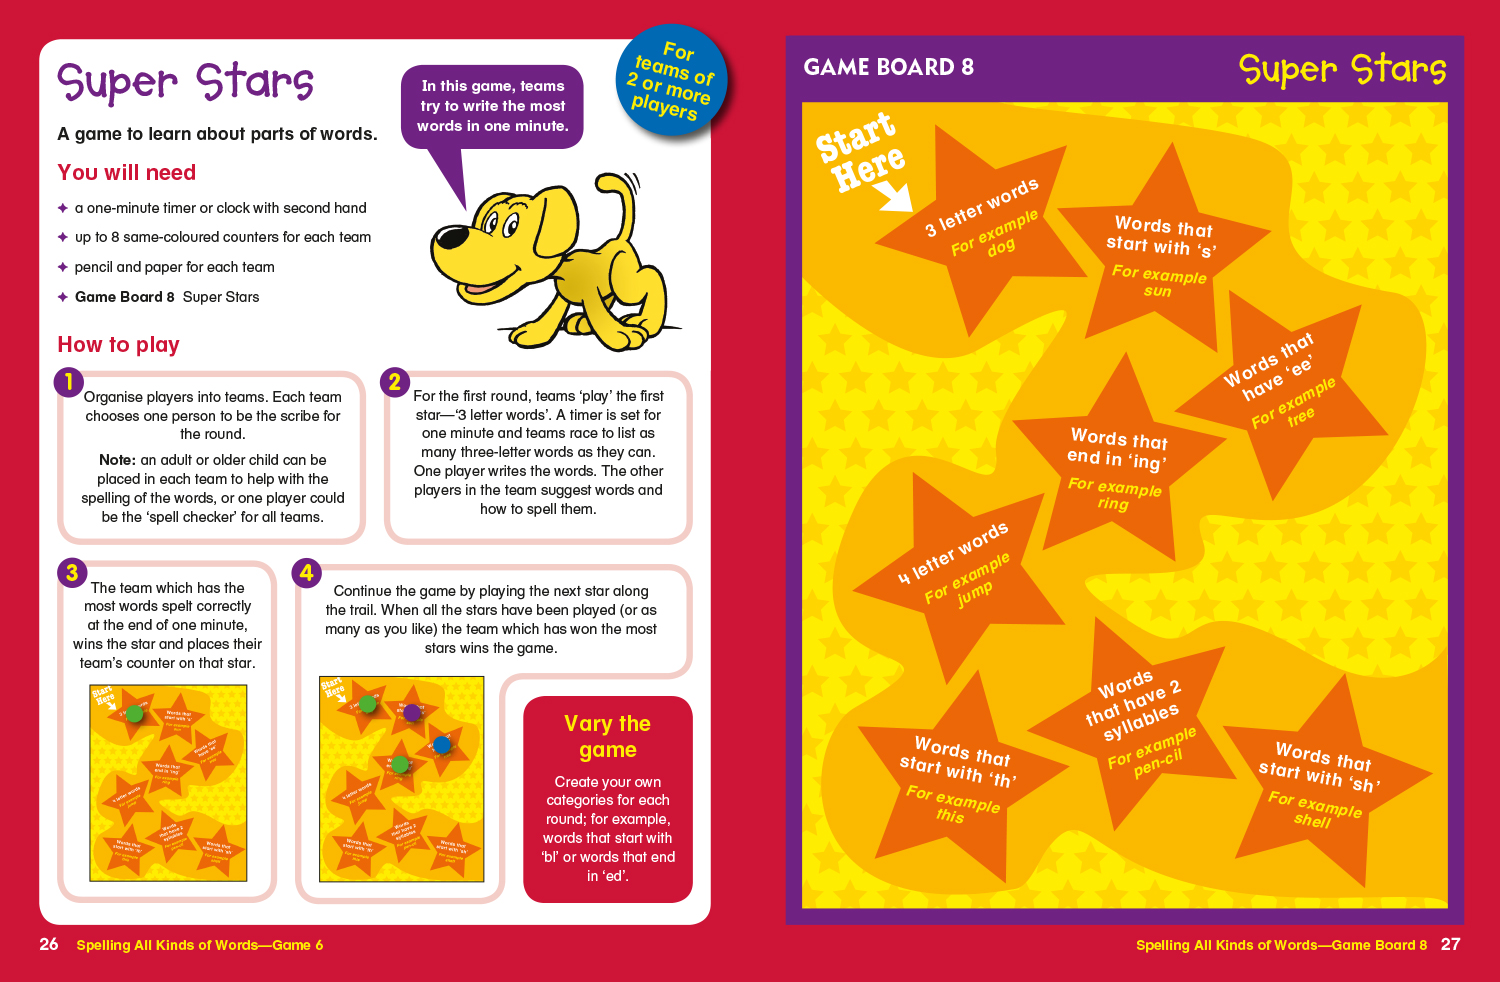 Sample spread from Word games level 2